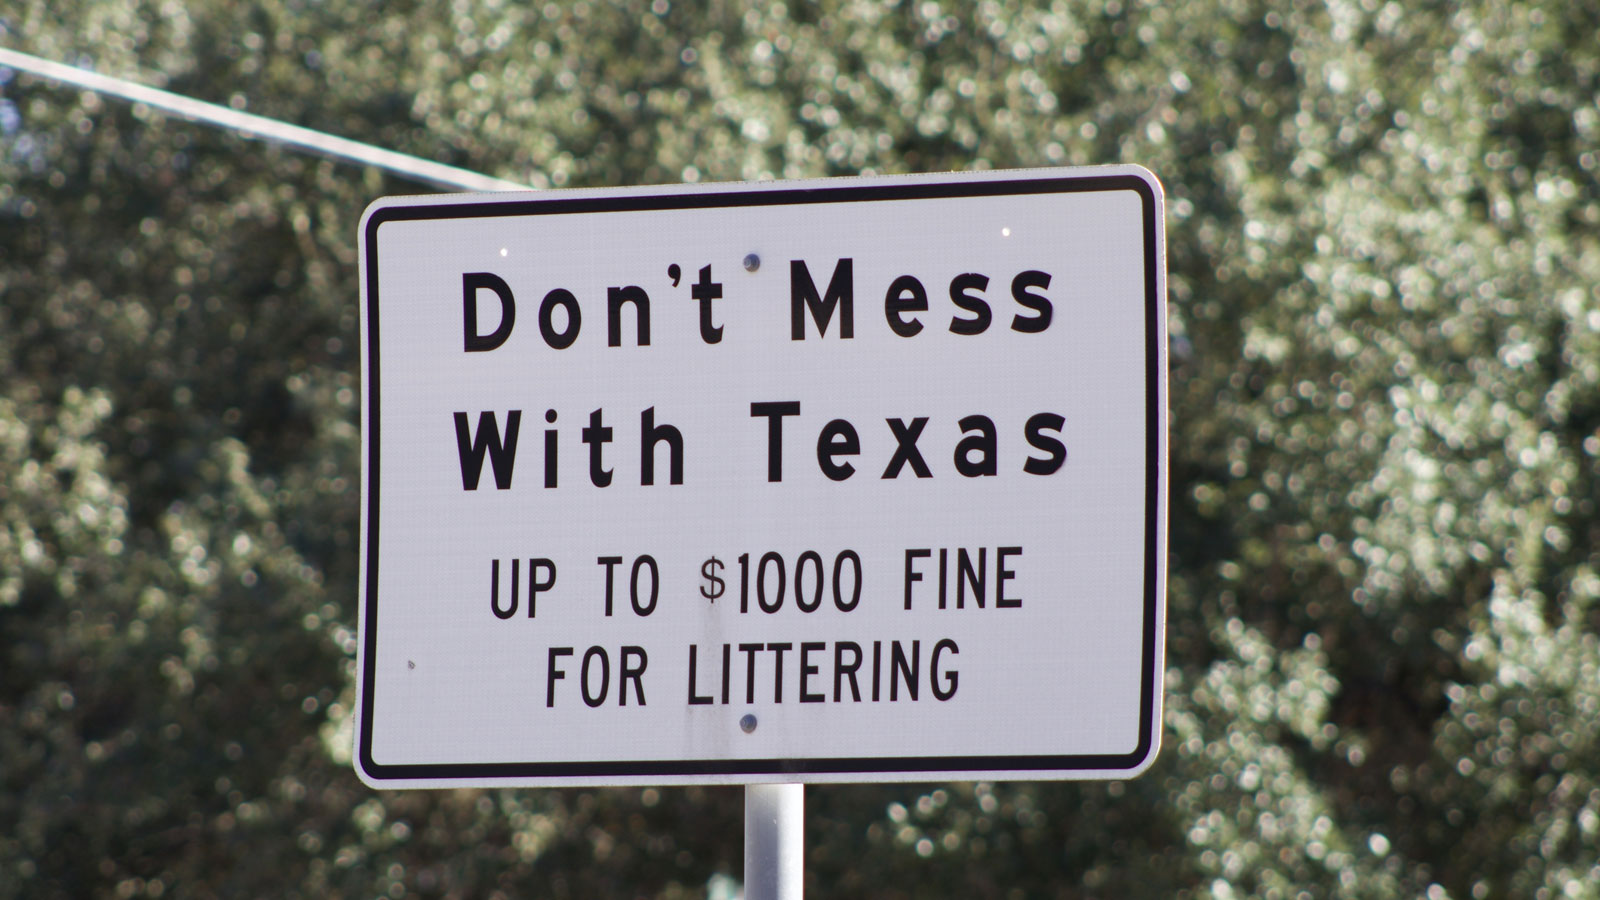 Don't mess with Texas sign